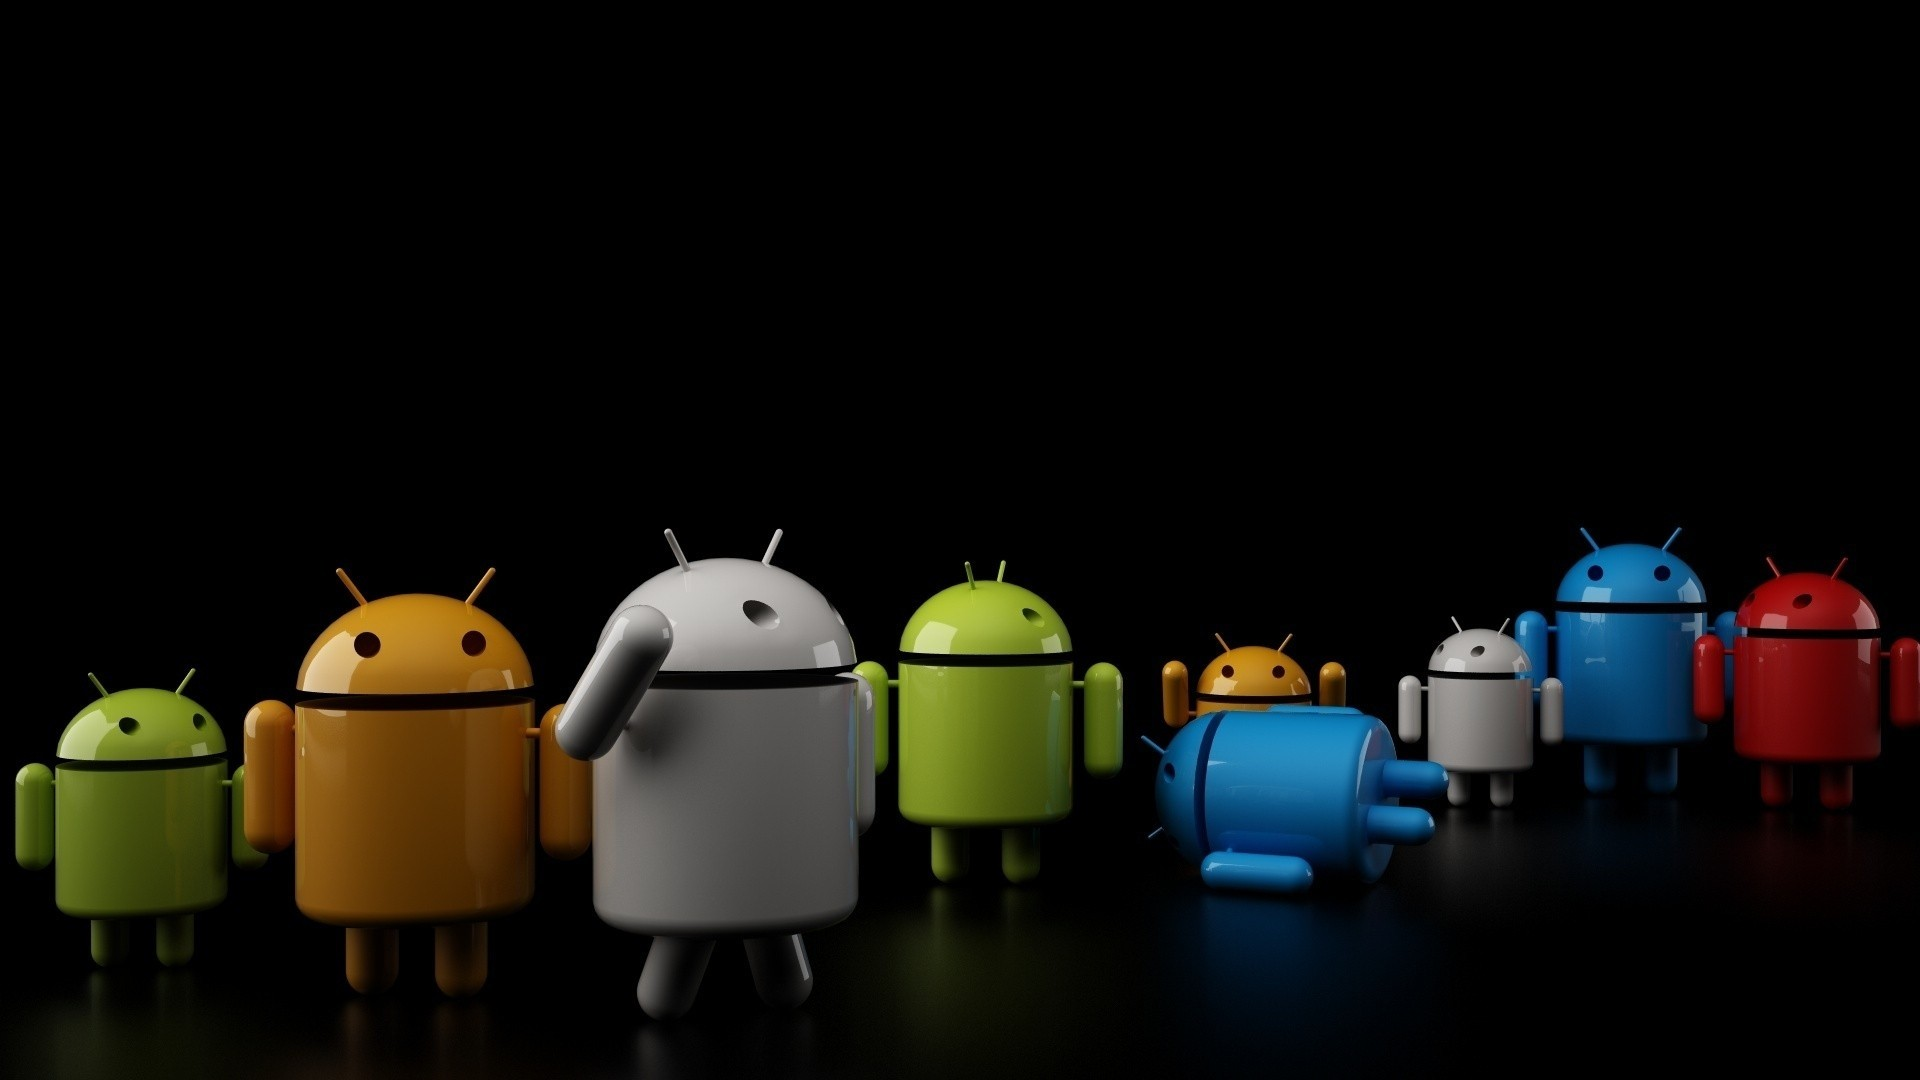 Android HD Wallpapers 1080p (81+ images)